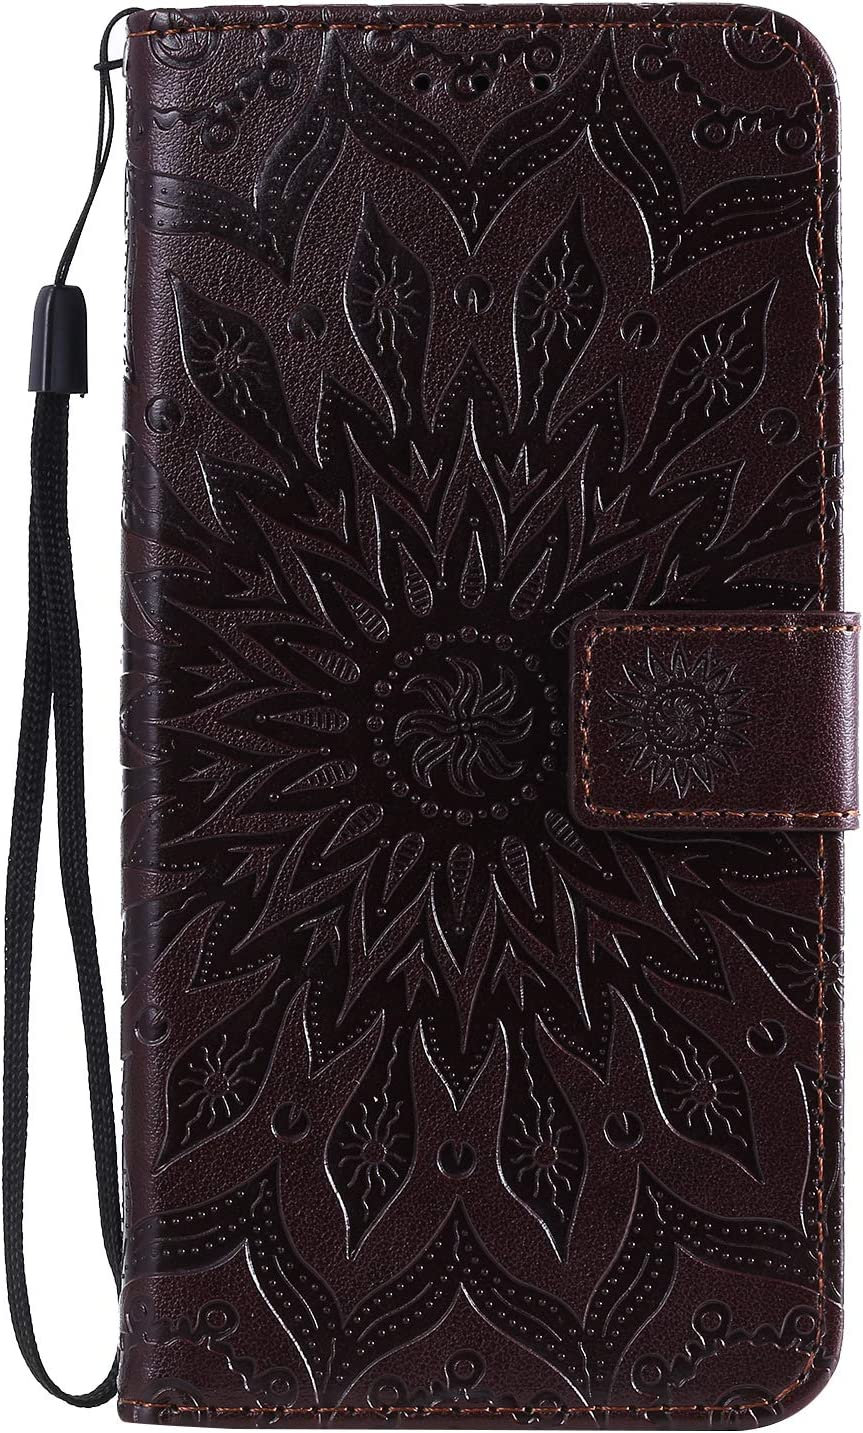 Shockproof Leather Flip Cover Case for Huawei Mate30 NEKTU020534 Brown NEXCURIO Wallet Case for Huawei Mate 30 with Card Holder Side Pocket Kickstand